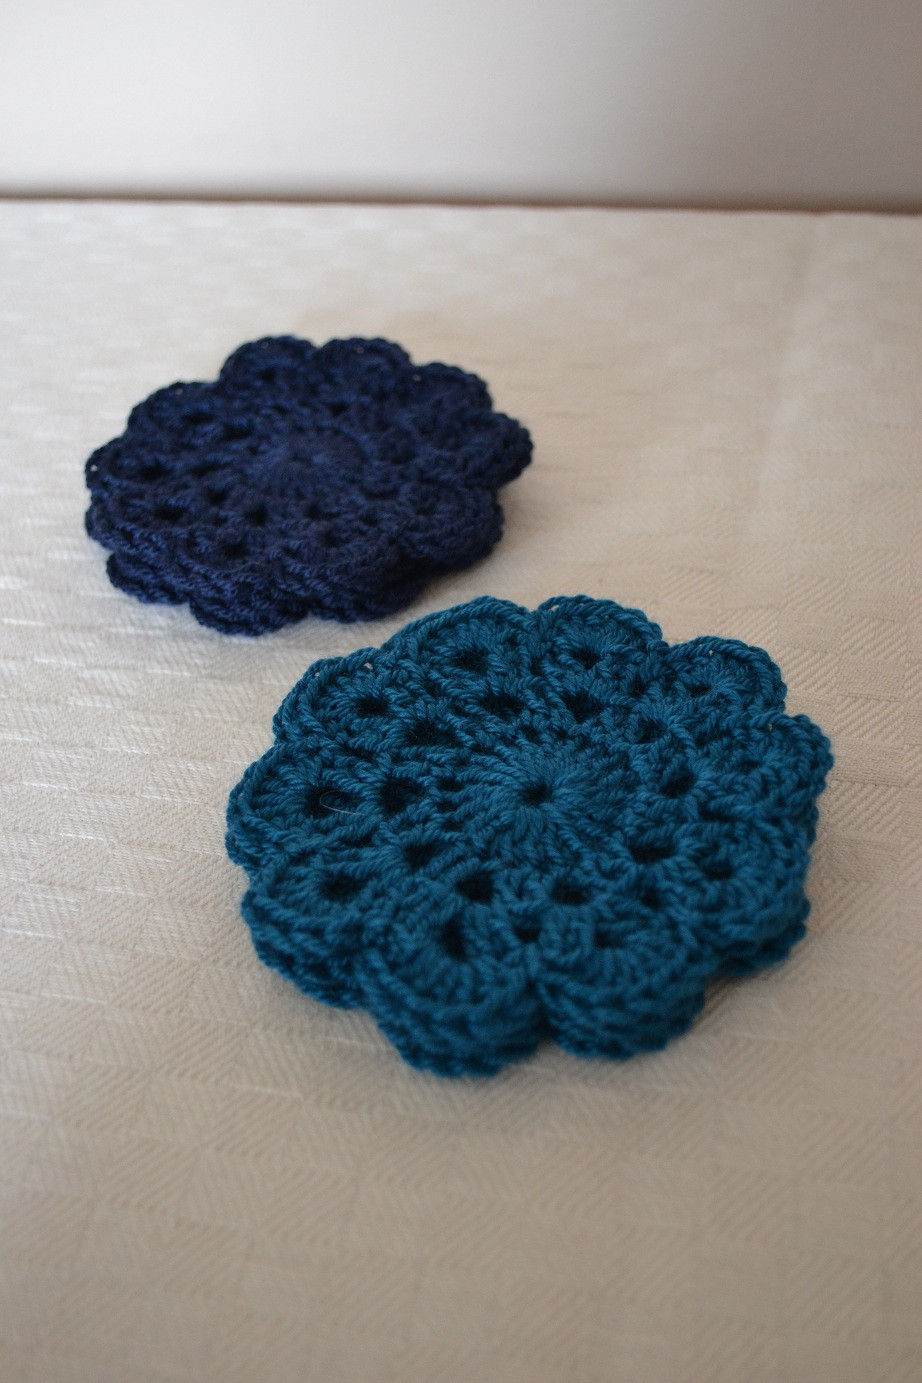 Quick and Easy Crochet Patterns Inspirational Princess Crafts Quick Crochet Coasters Of Fresh 47 Pictures Quick and Easy Crochet Patterns